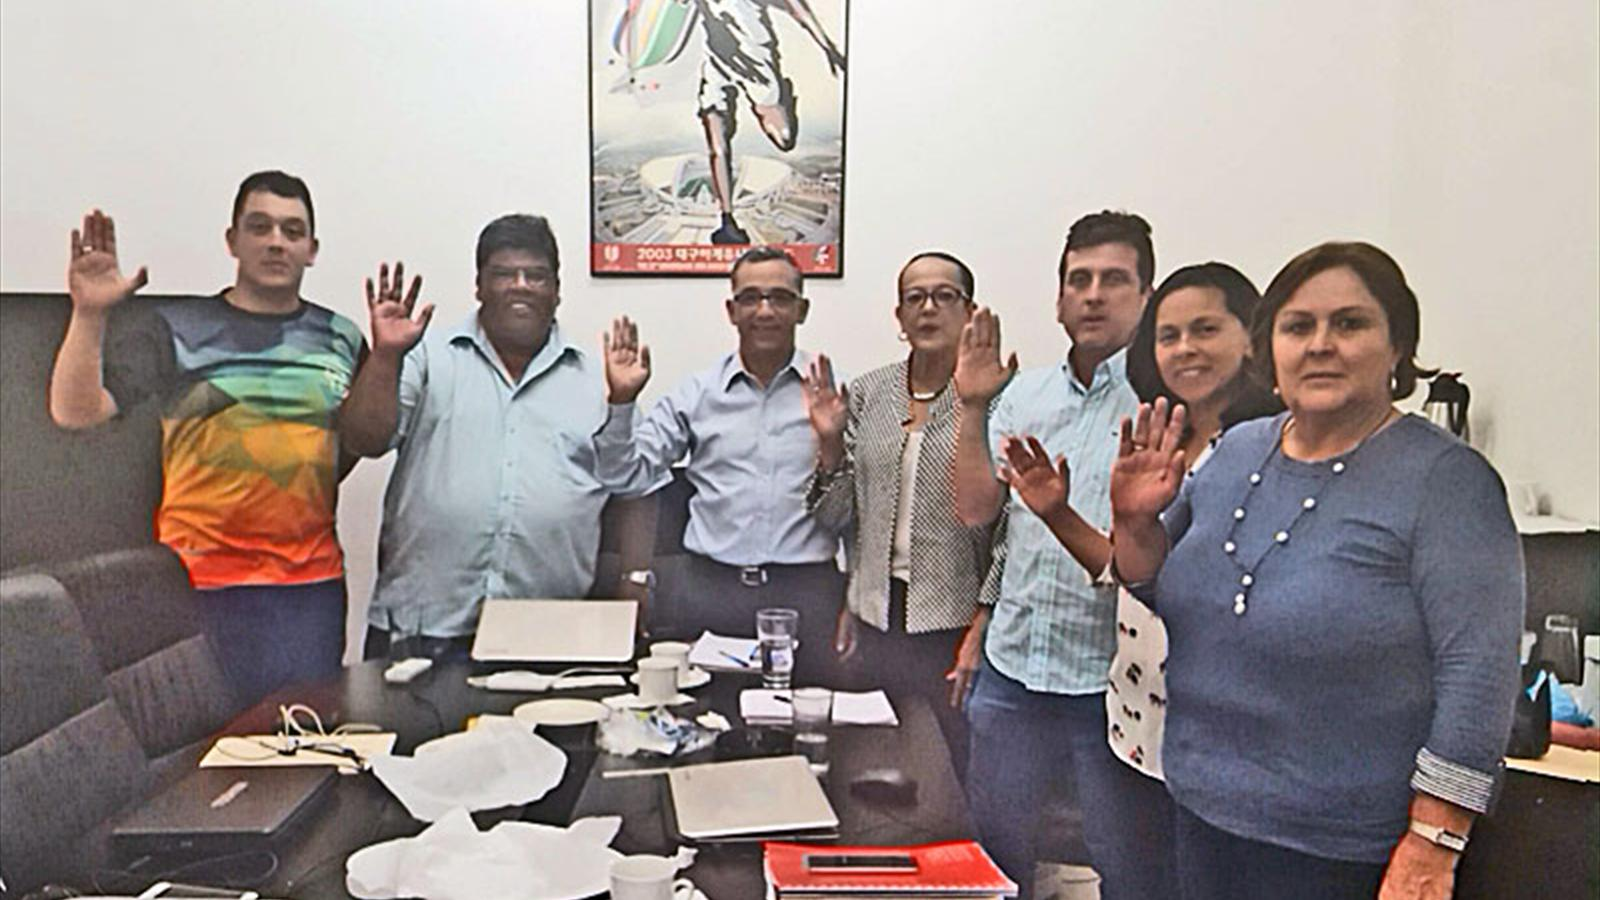 Costa rica nusf elects new executive committee 2017 2021 - University league tables french ...